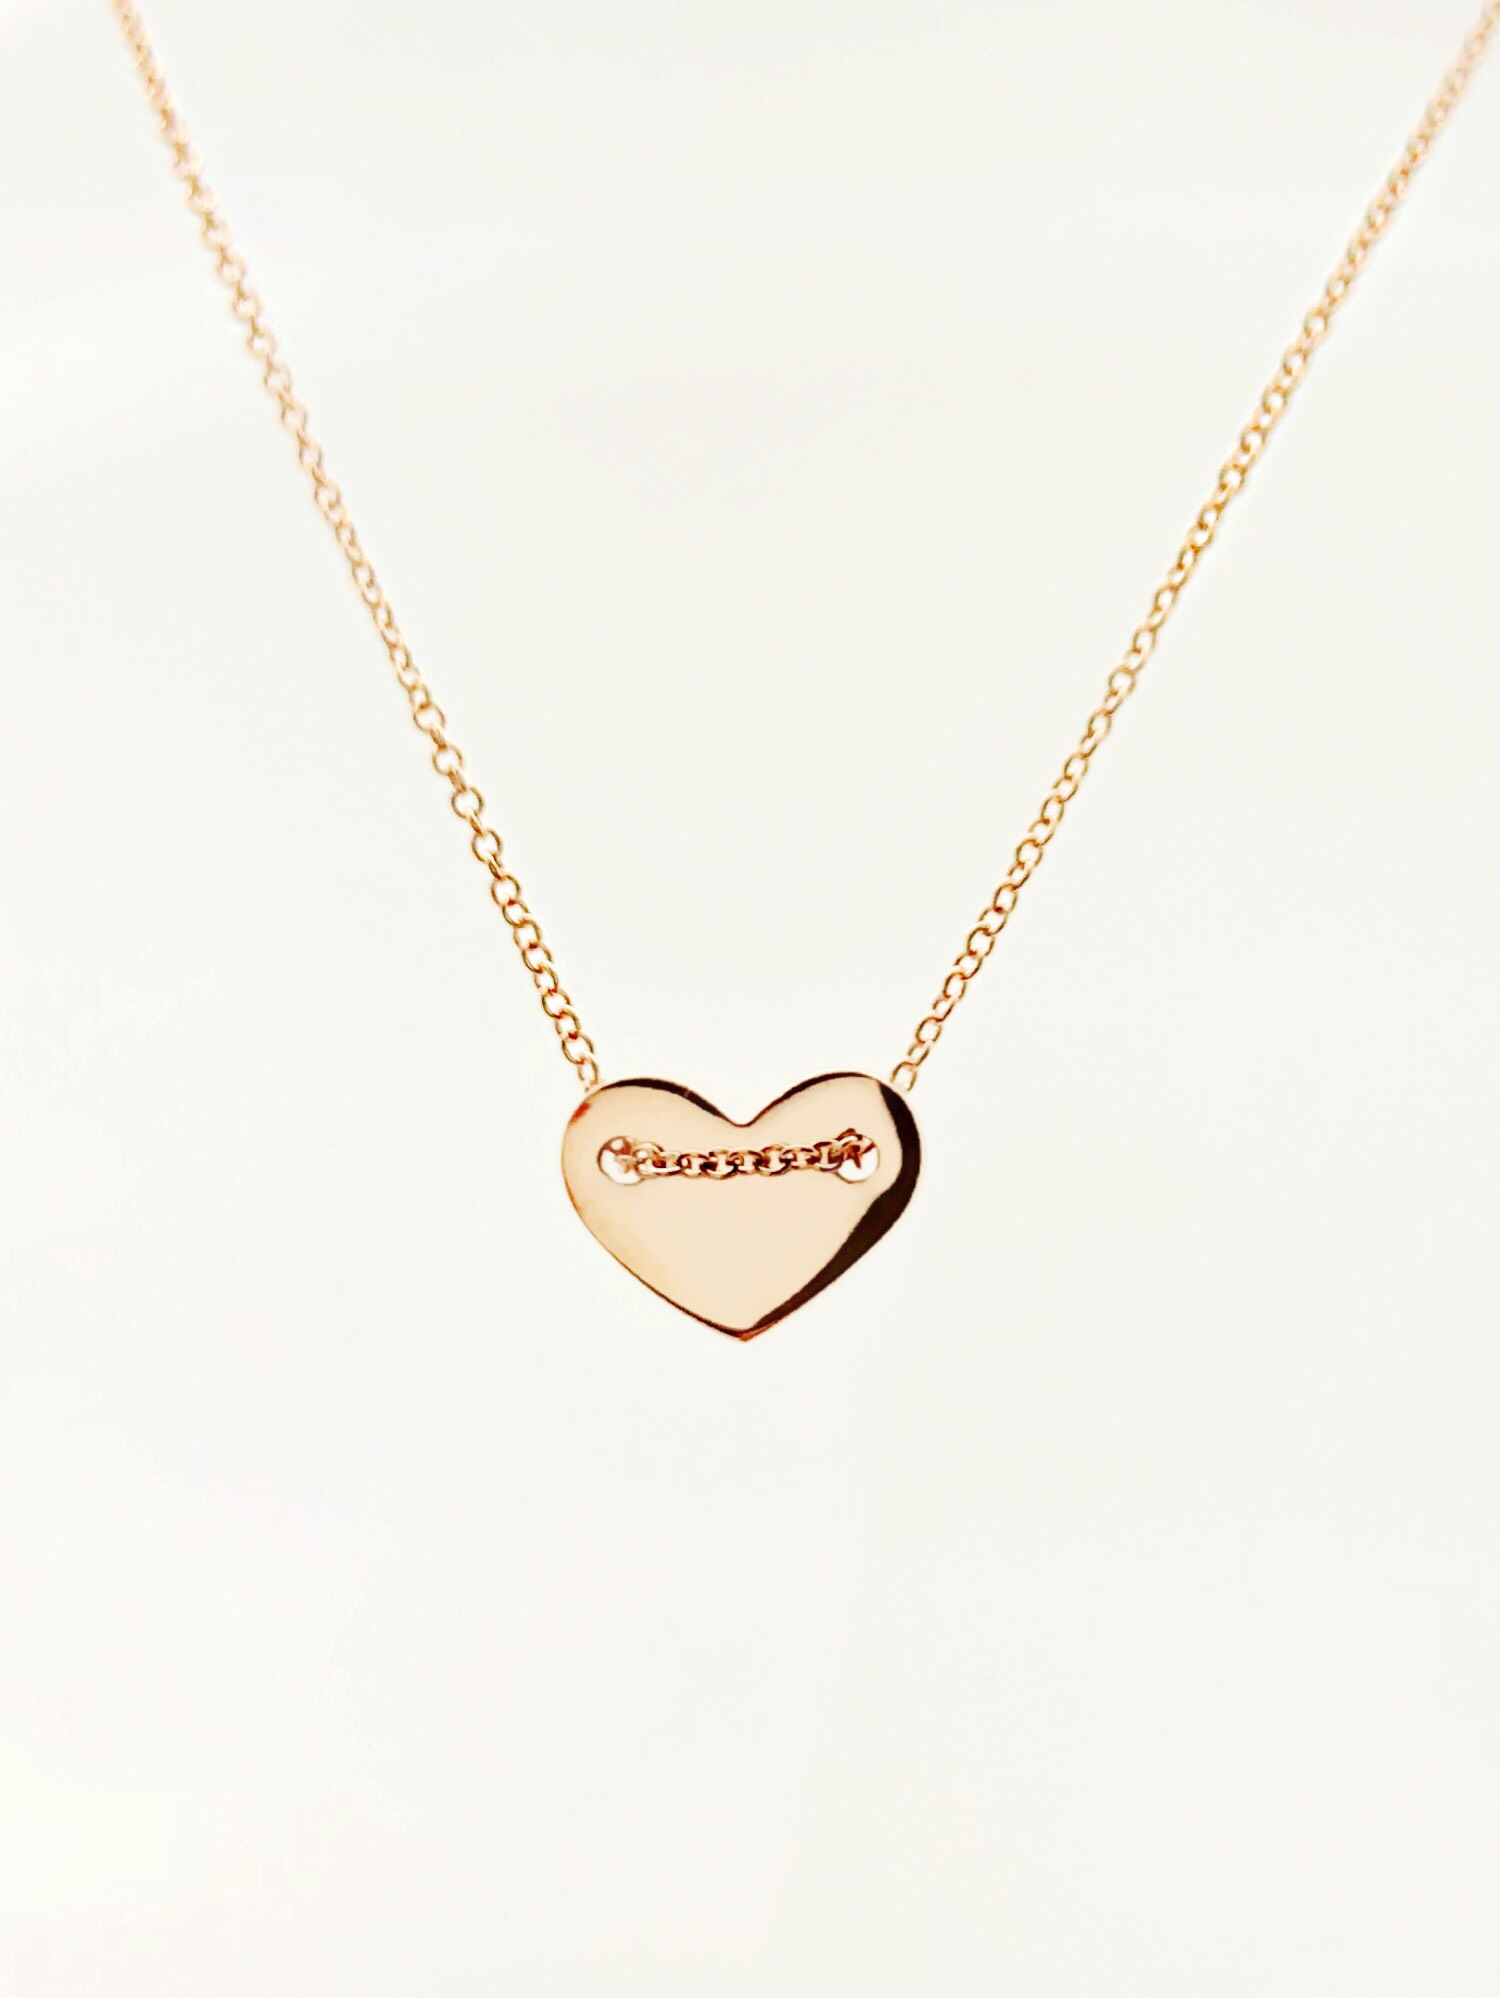 view alternate jewelry necklace os reno product jewellery size necklaces heart